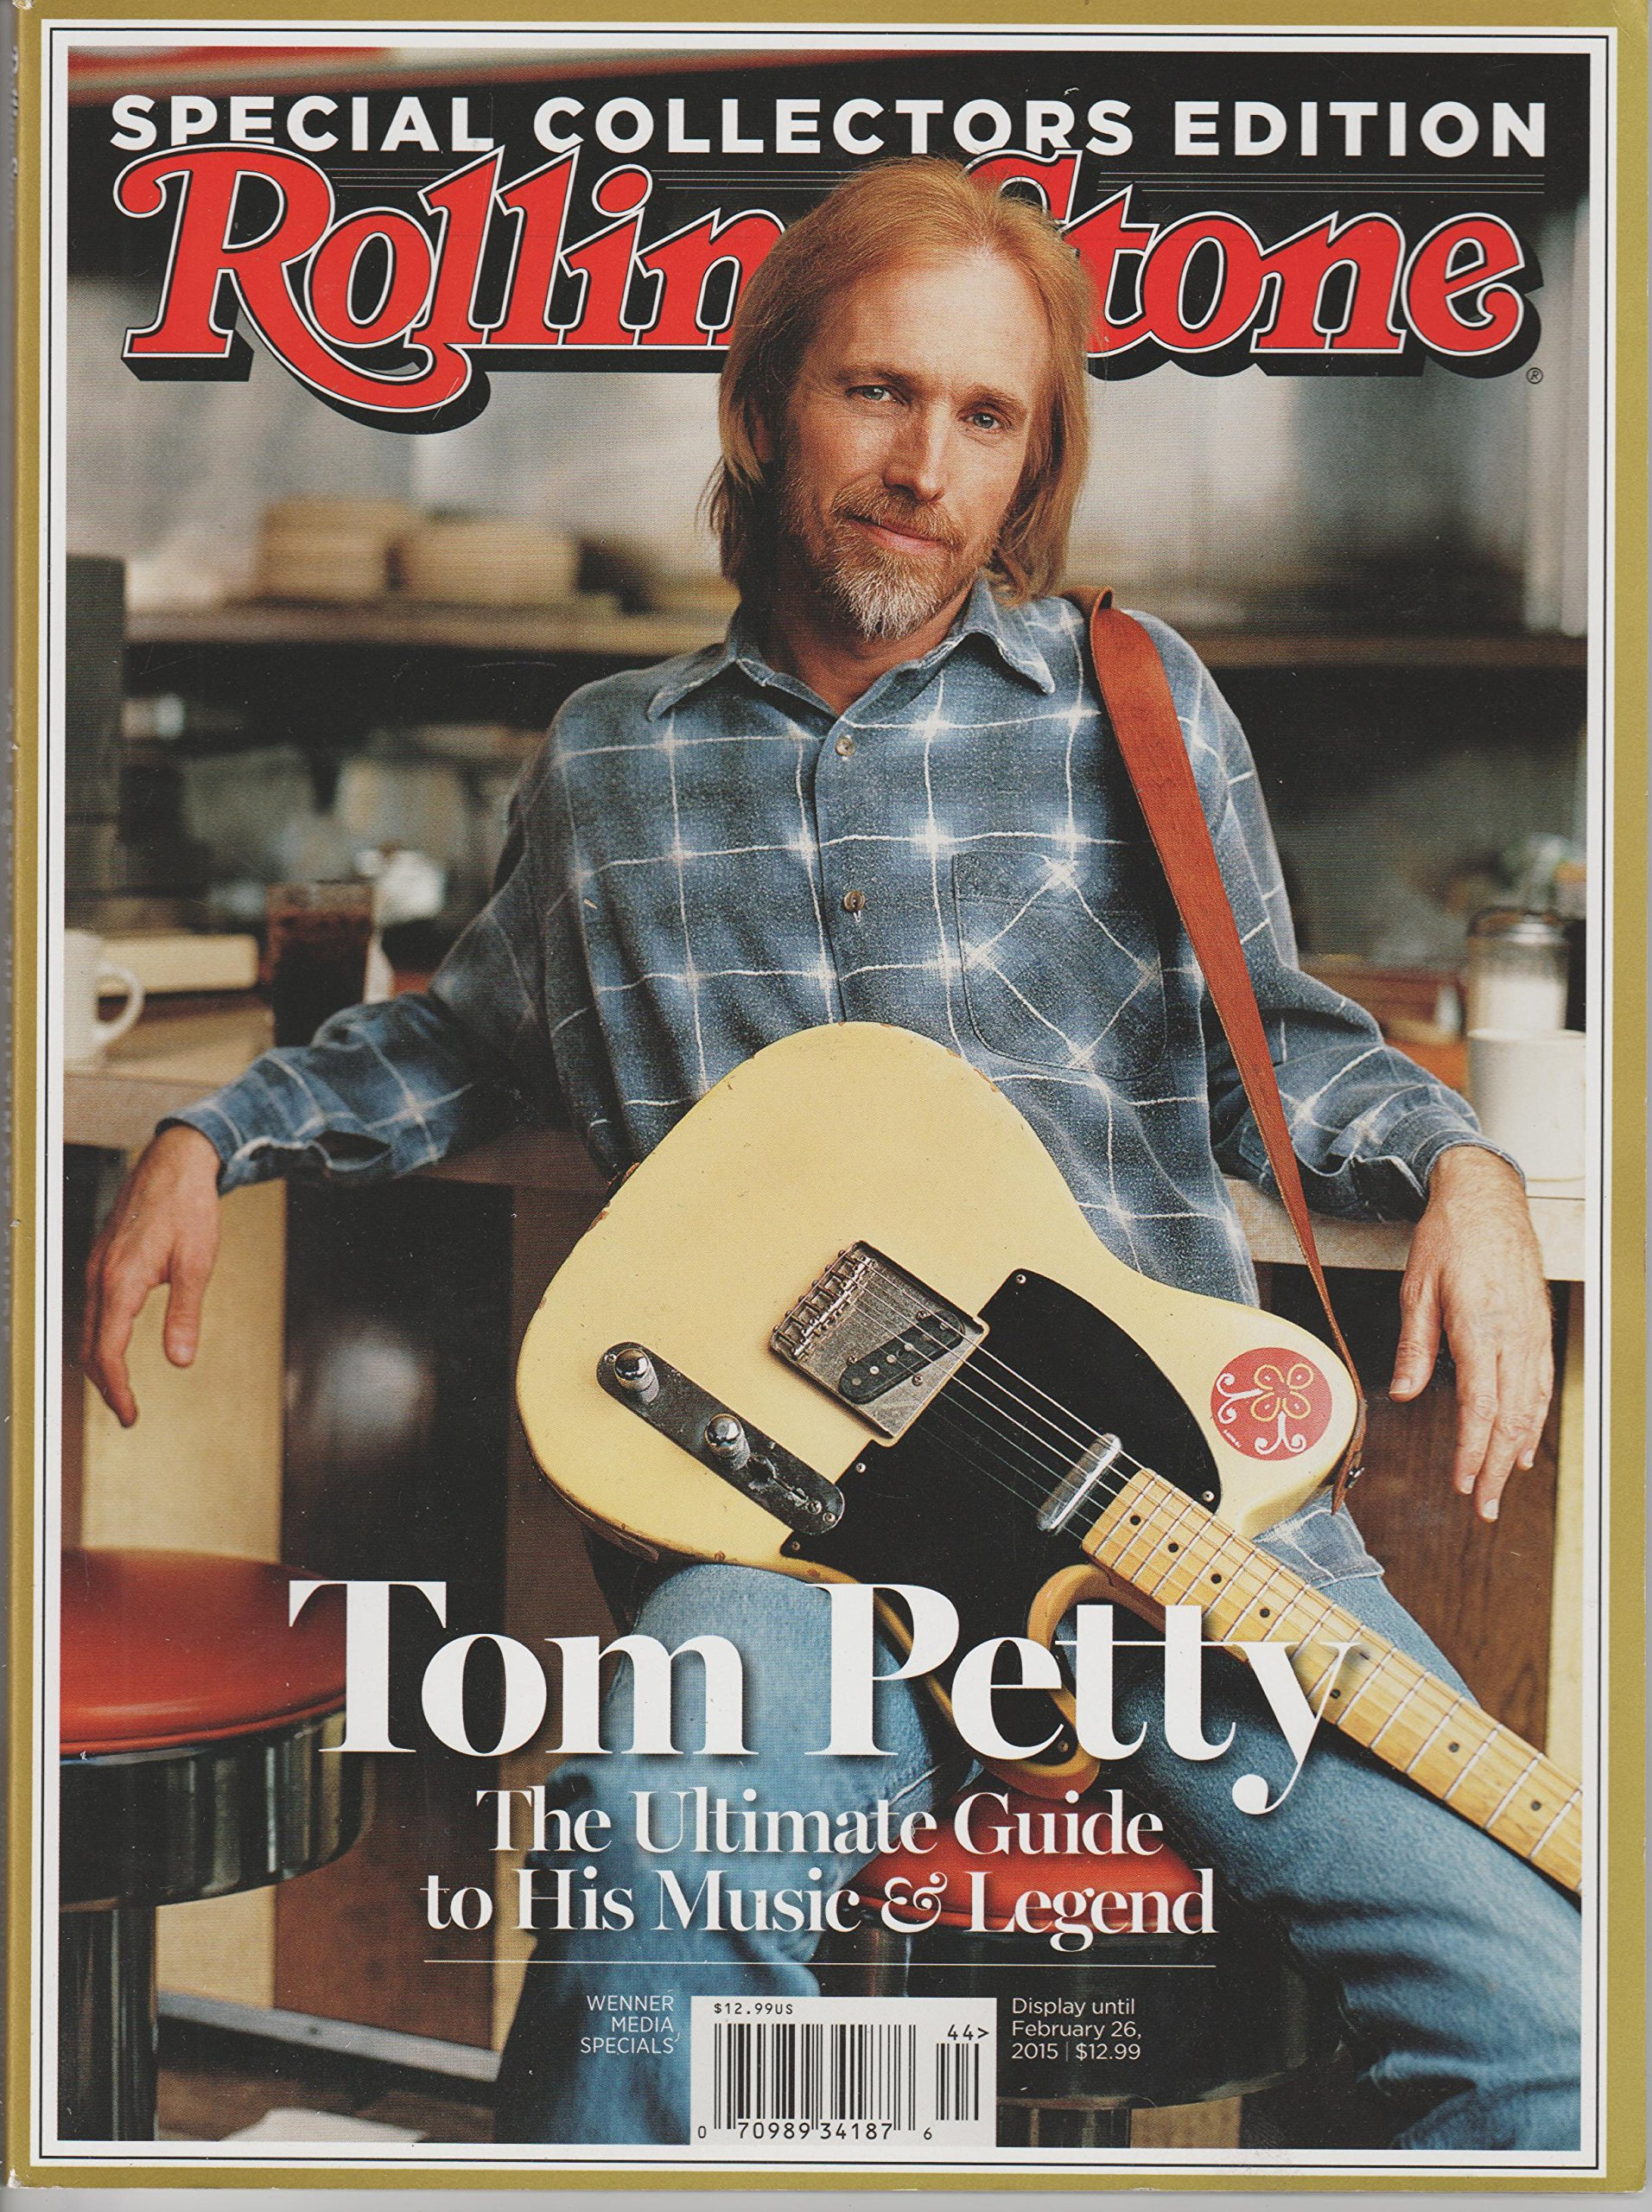 TOM PETTY - The Ultimate Guide to His Music & Legend - Rolling Stone Special Collectors Edition. ebook